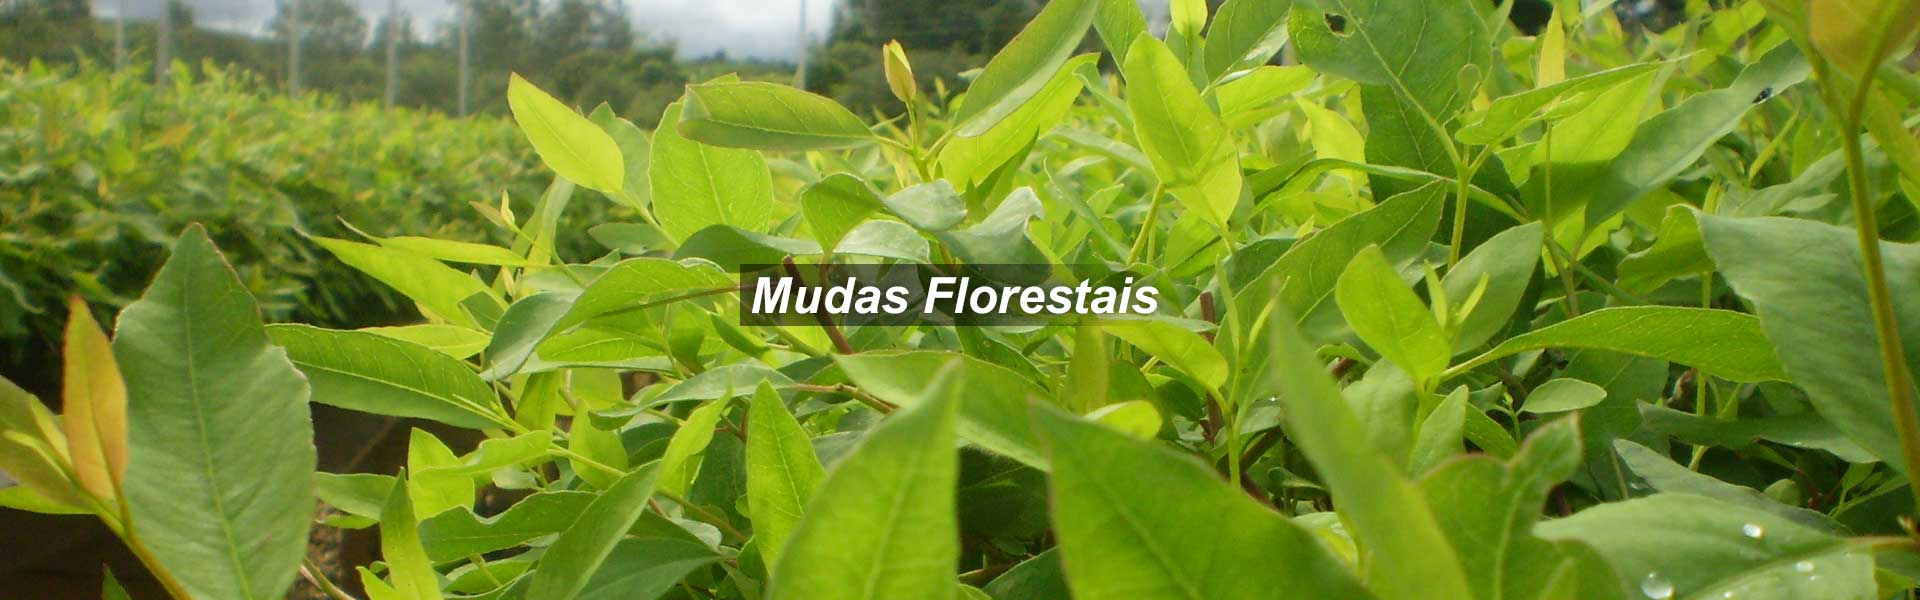 Mudas Florestais